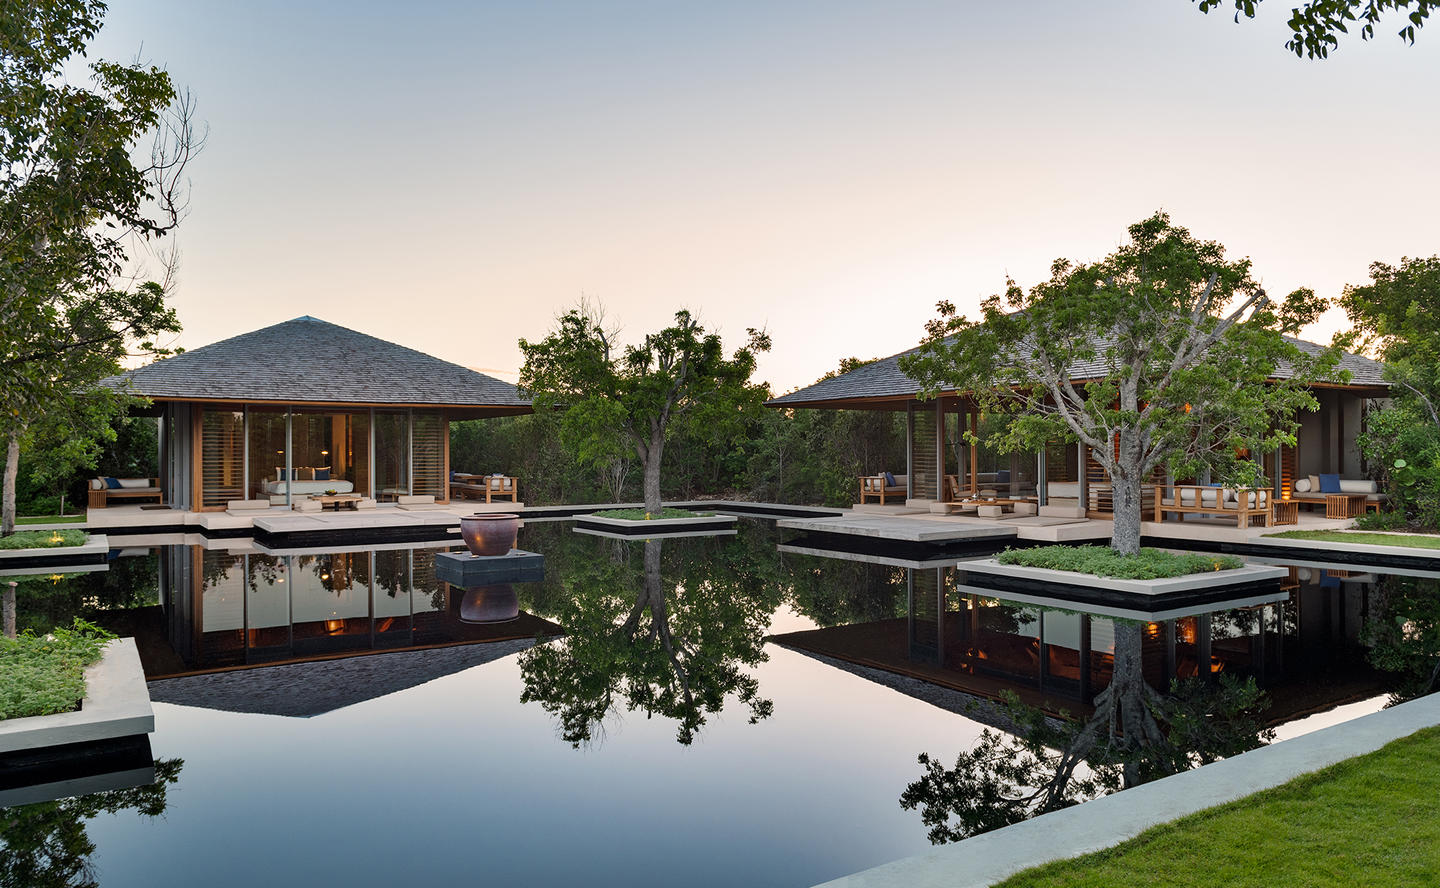 Lakeside Pavilions, Four-Bedroom Tranquility Villa - Amanyara, Turks & Caicos